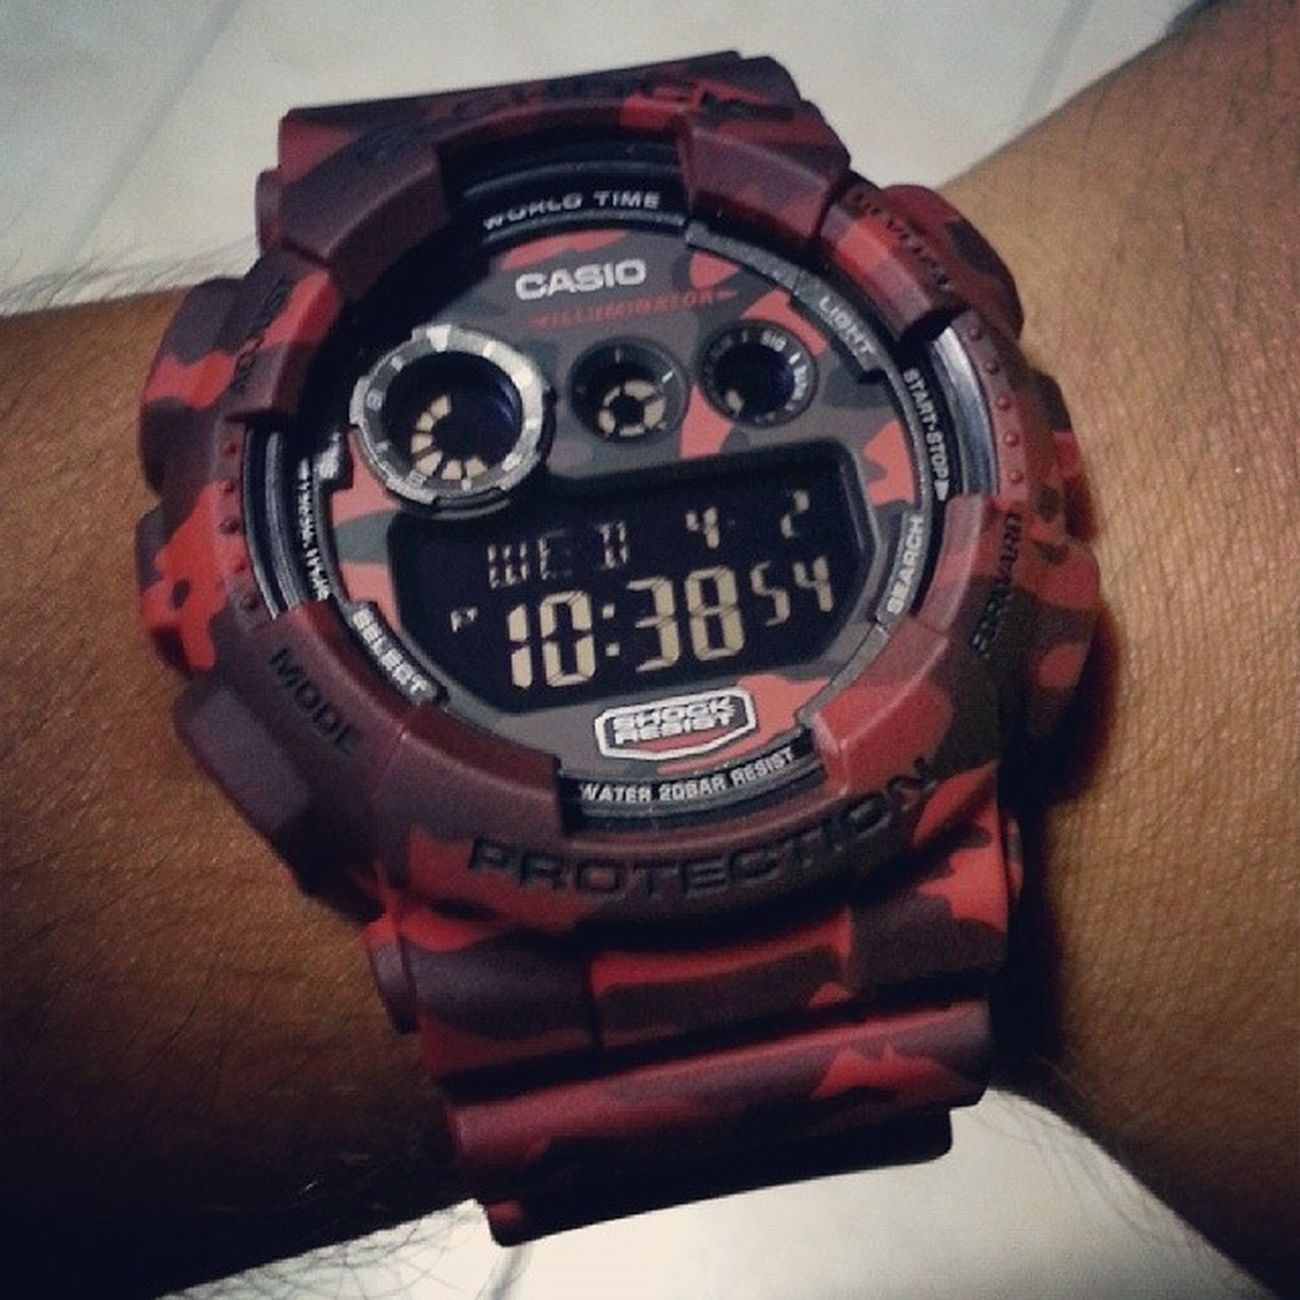 Achievement unlocked!! Gshock Gd120cm Gd120 Camo P.s: I did not buy this at a shop.. thehustleisreal